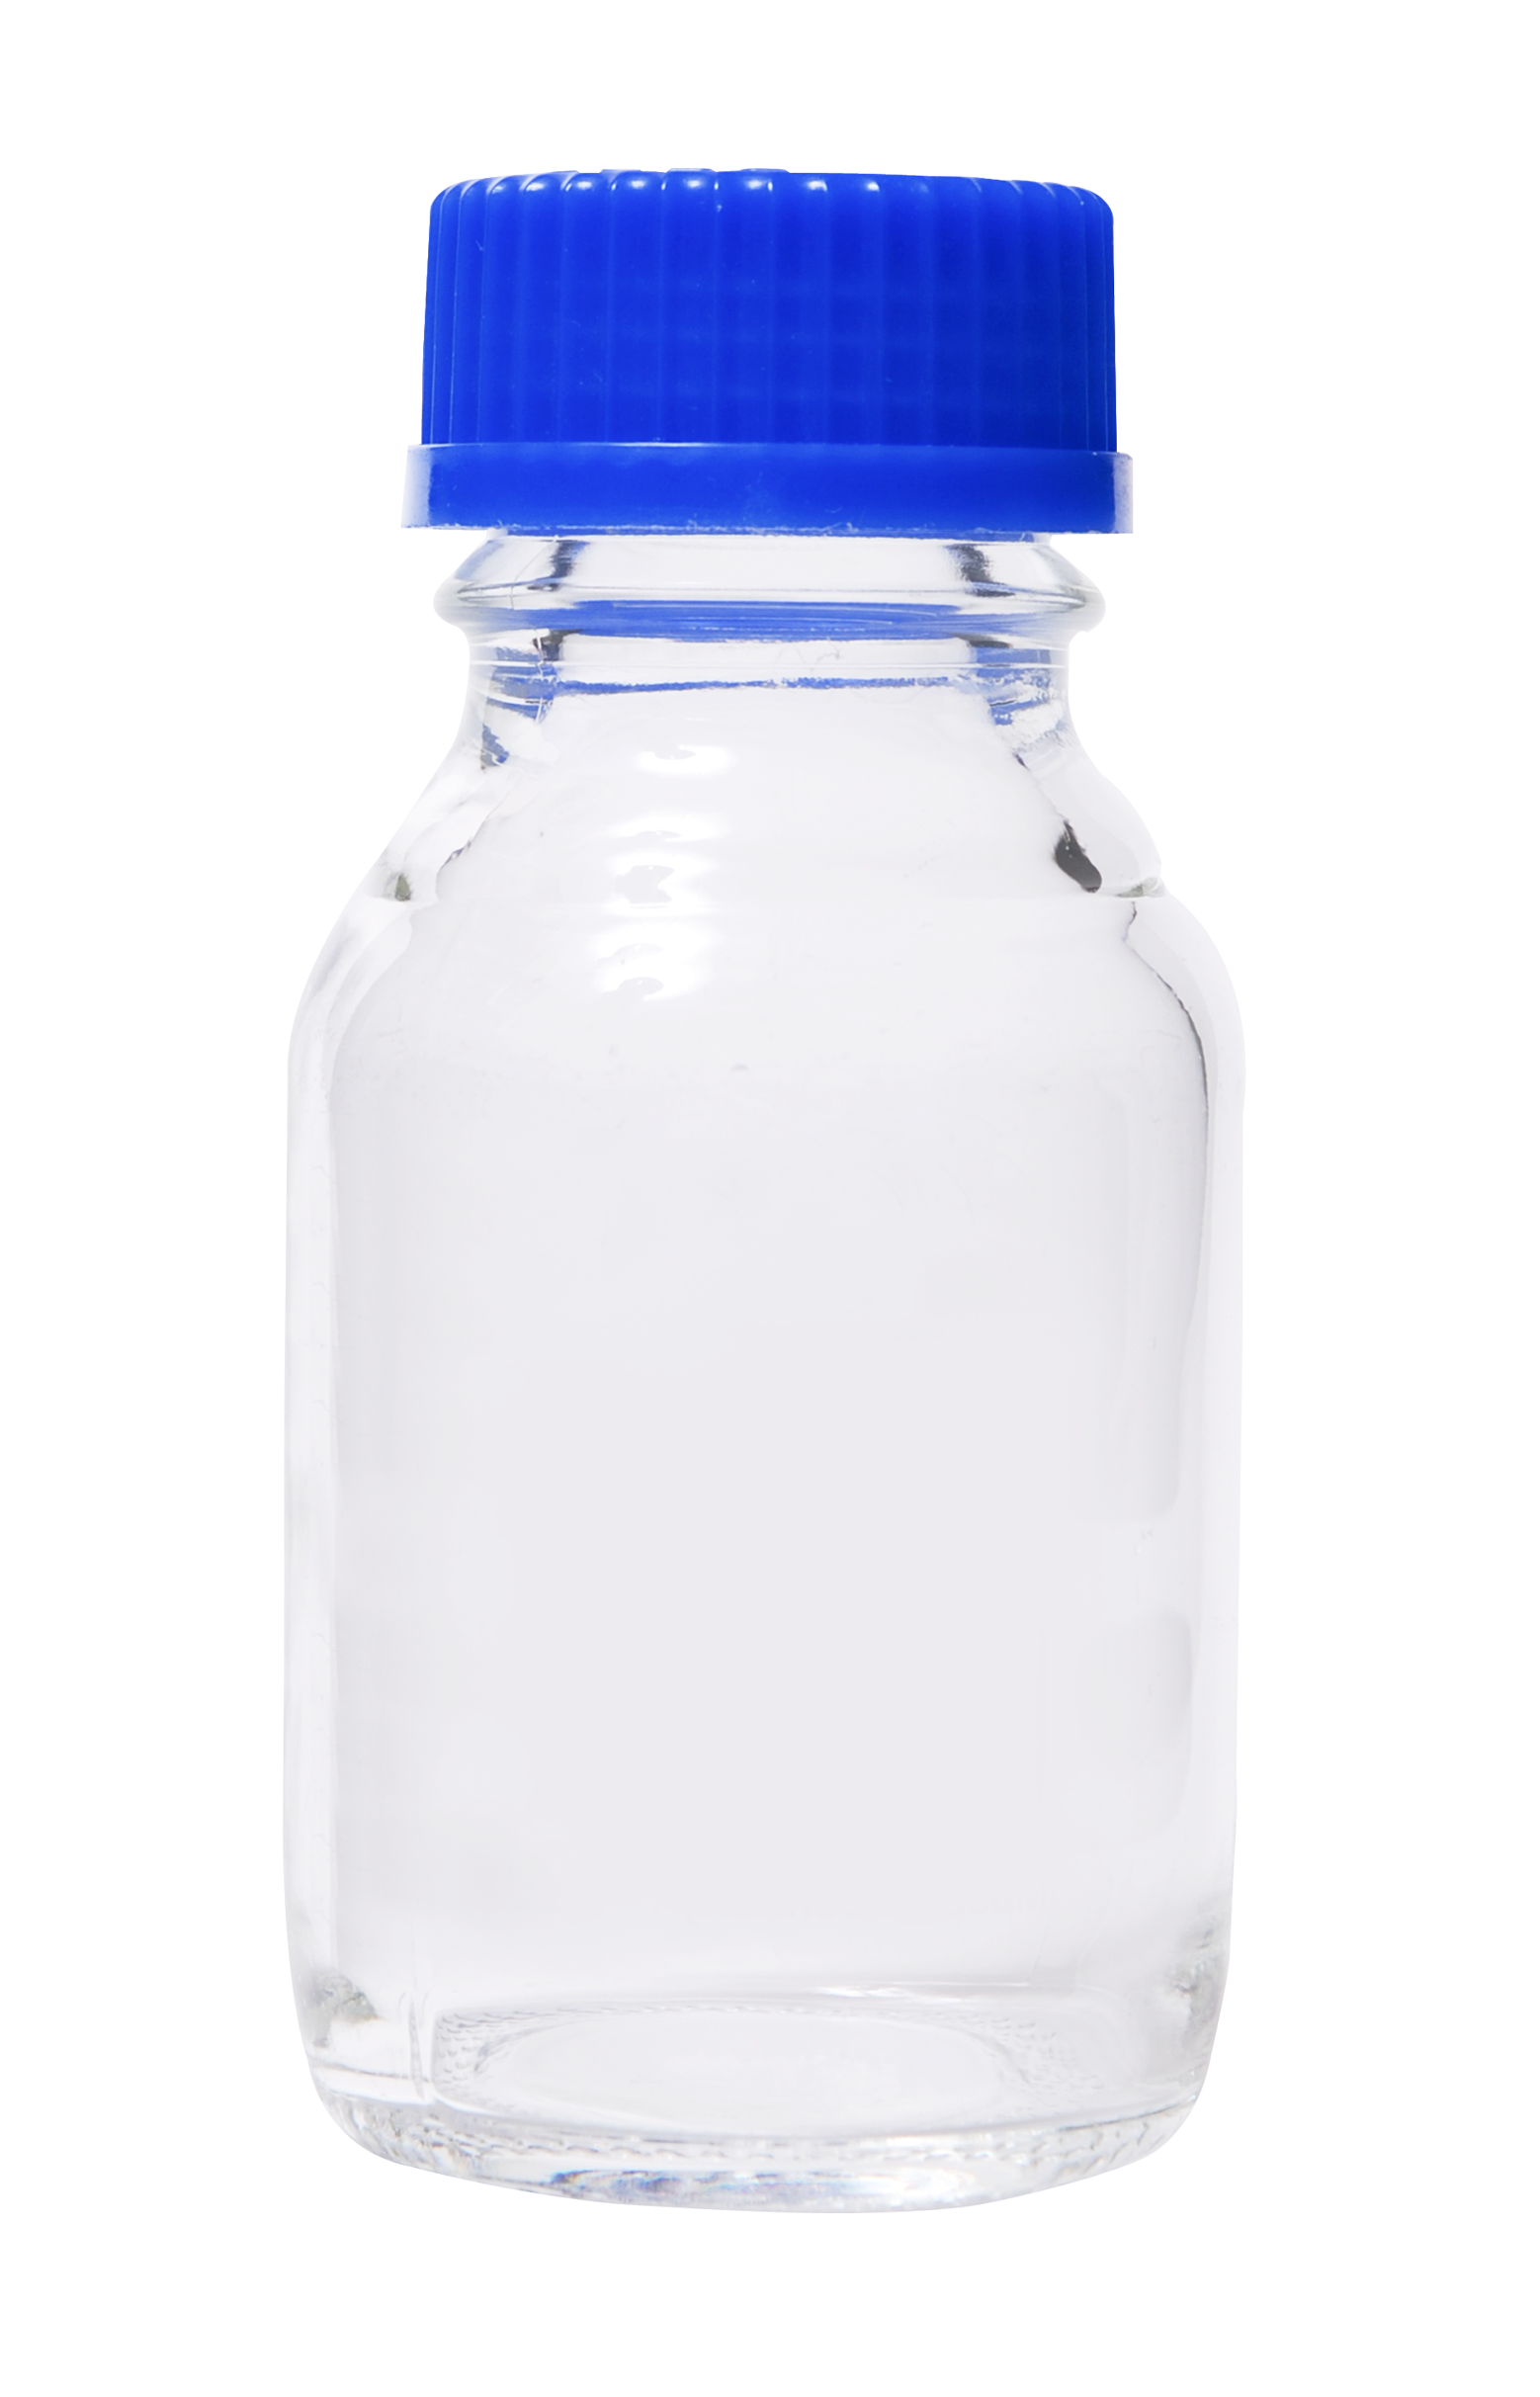 Small Water Bottle With Transparent Background image #48923